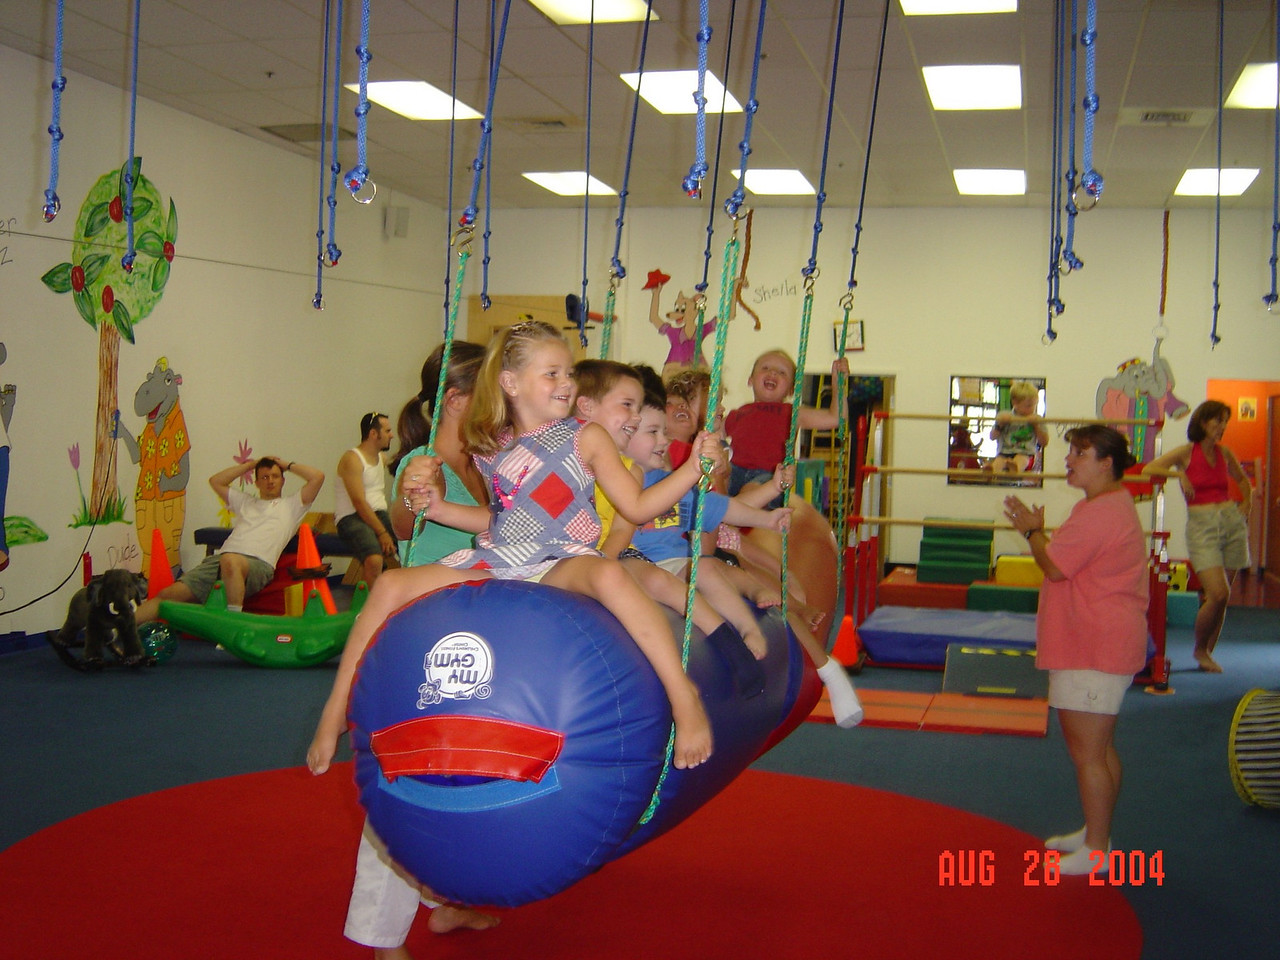 The_kids_swing_at_Natalie's_party_08-24-04